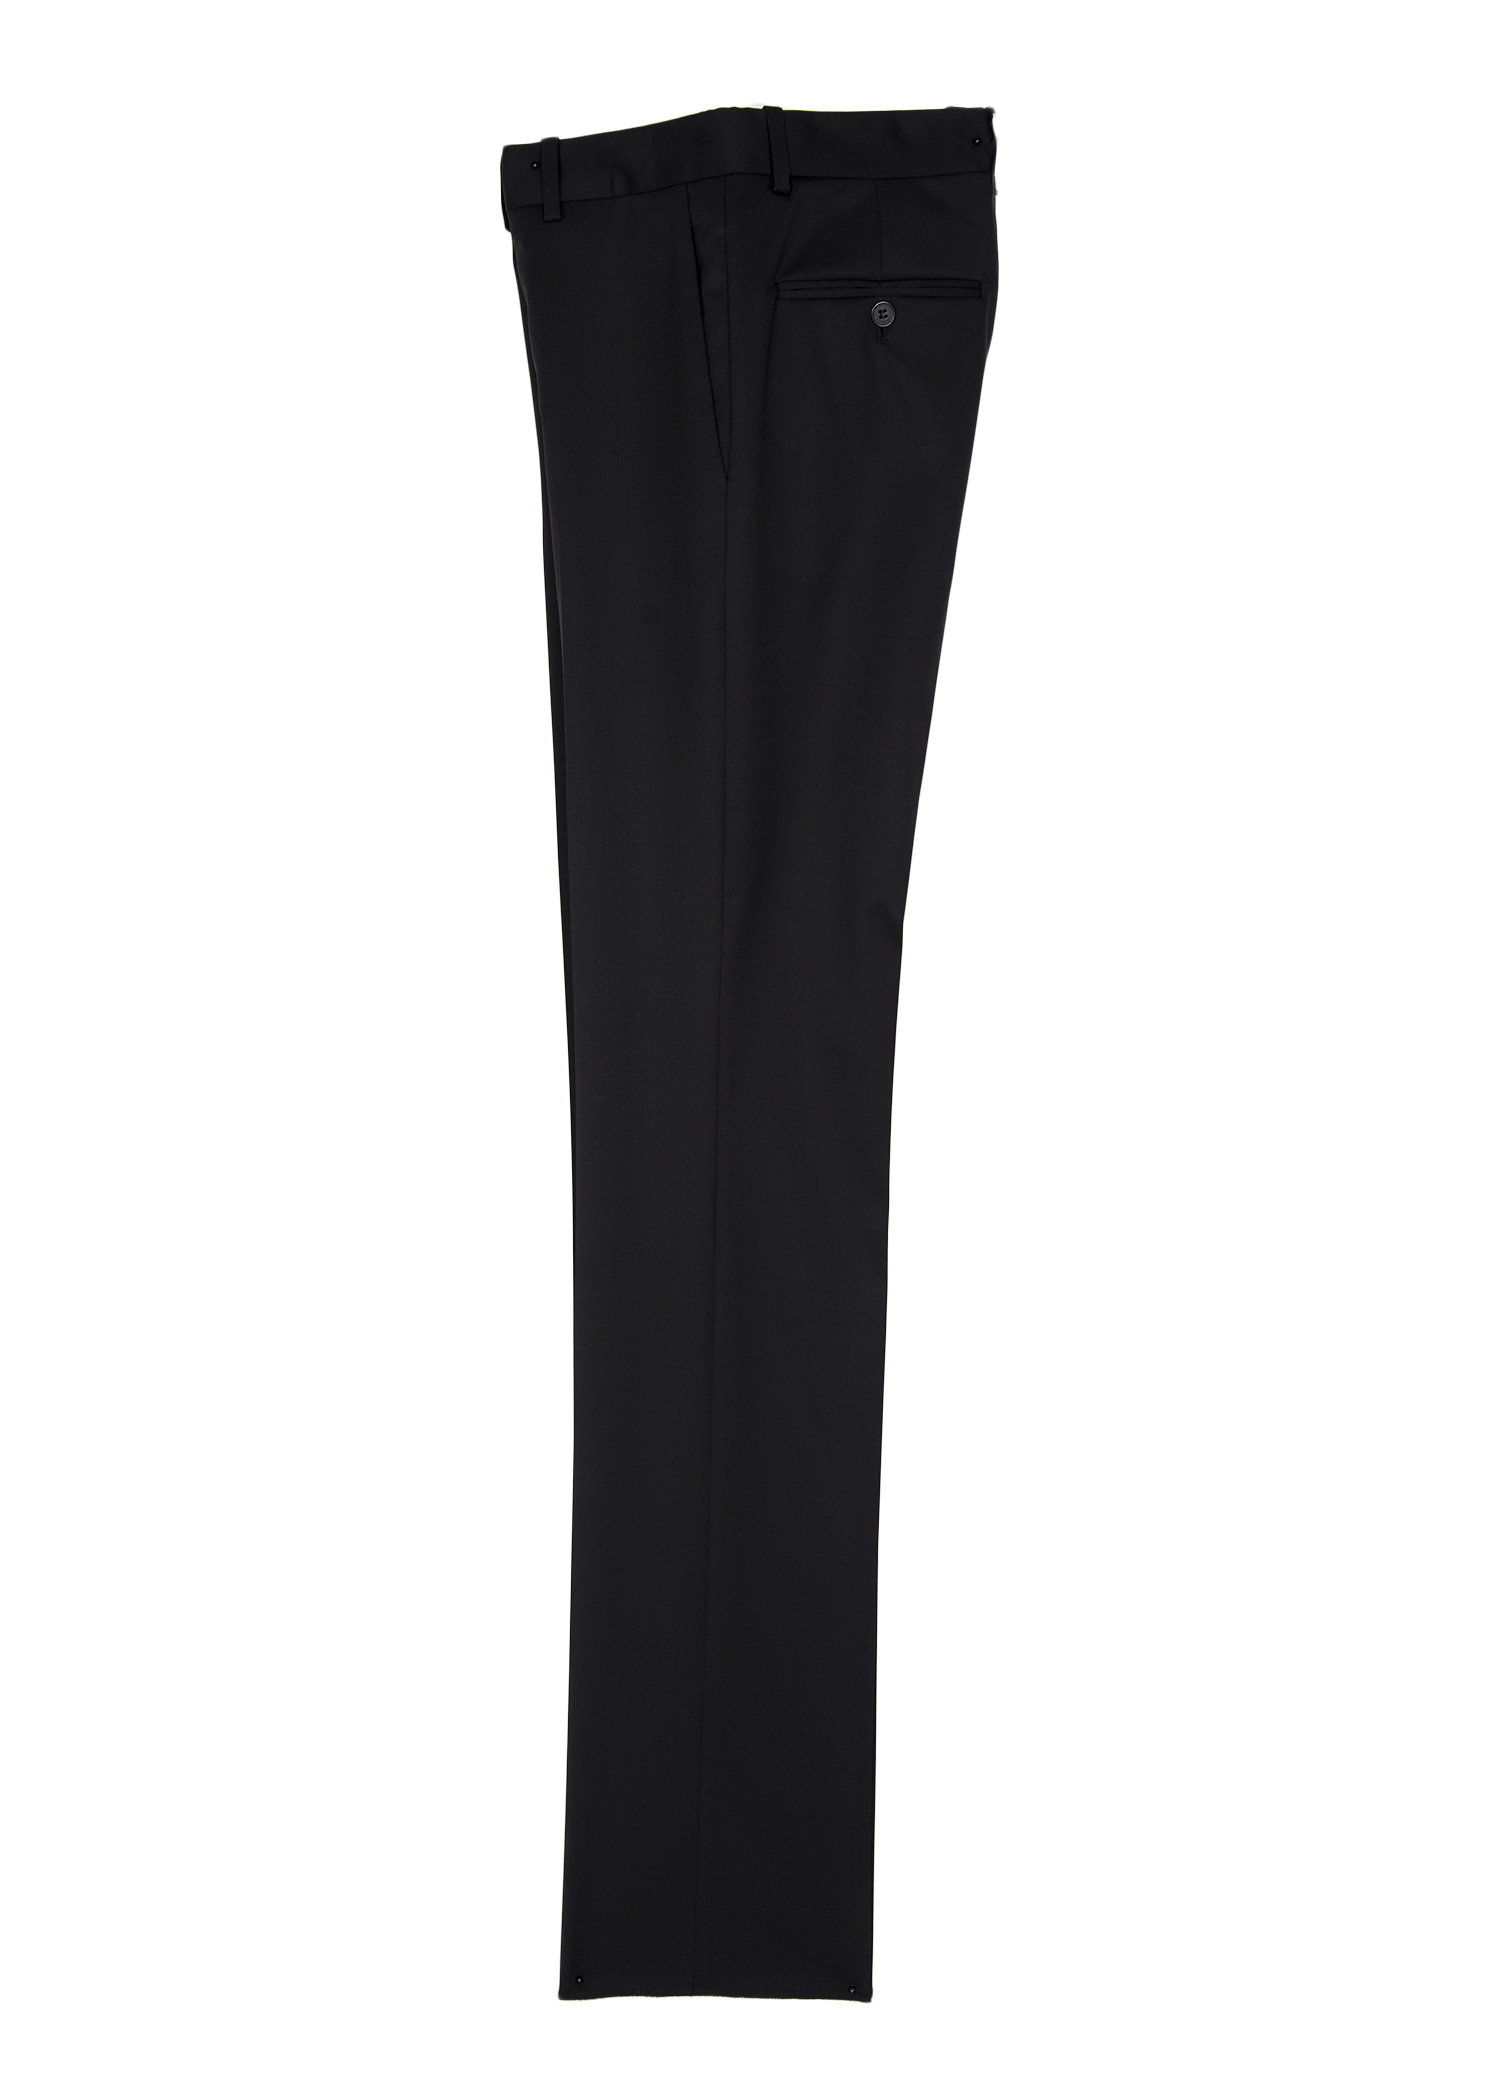 """34 GIVENCHY TROUSER """"GIVENCHY-TRO2-B"""""""